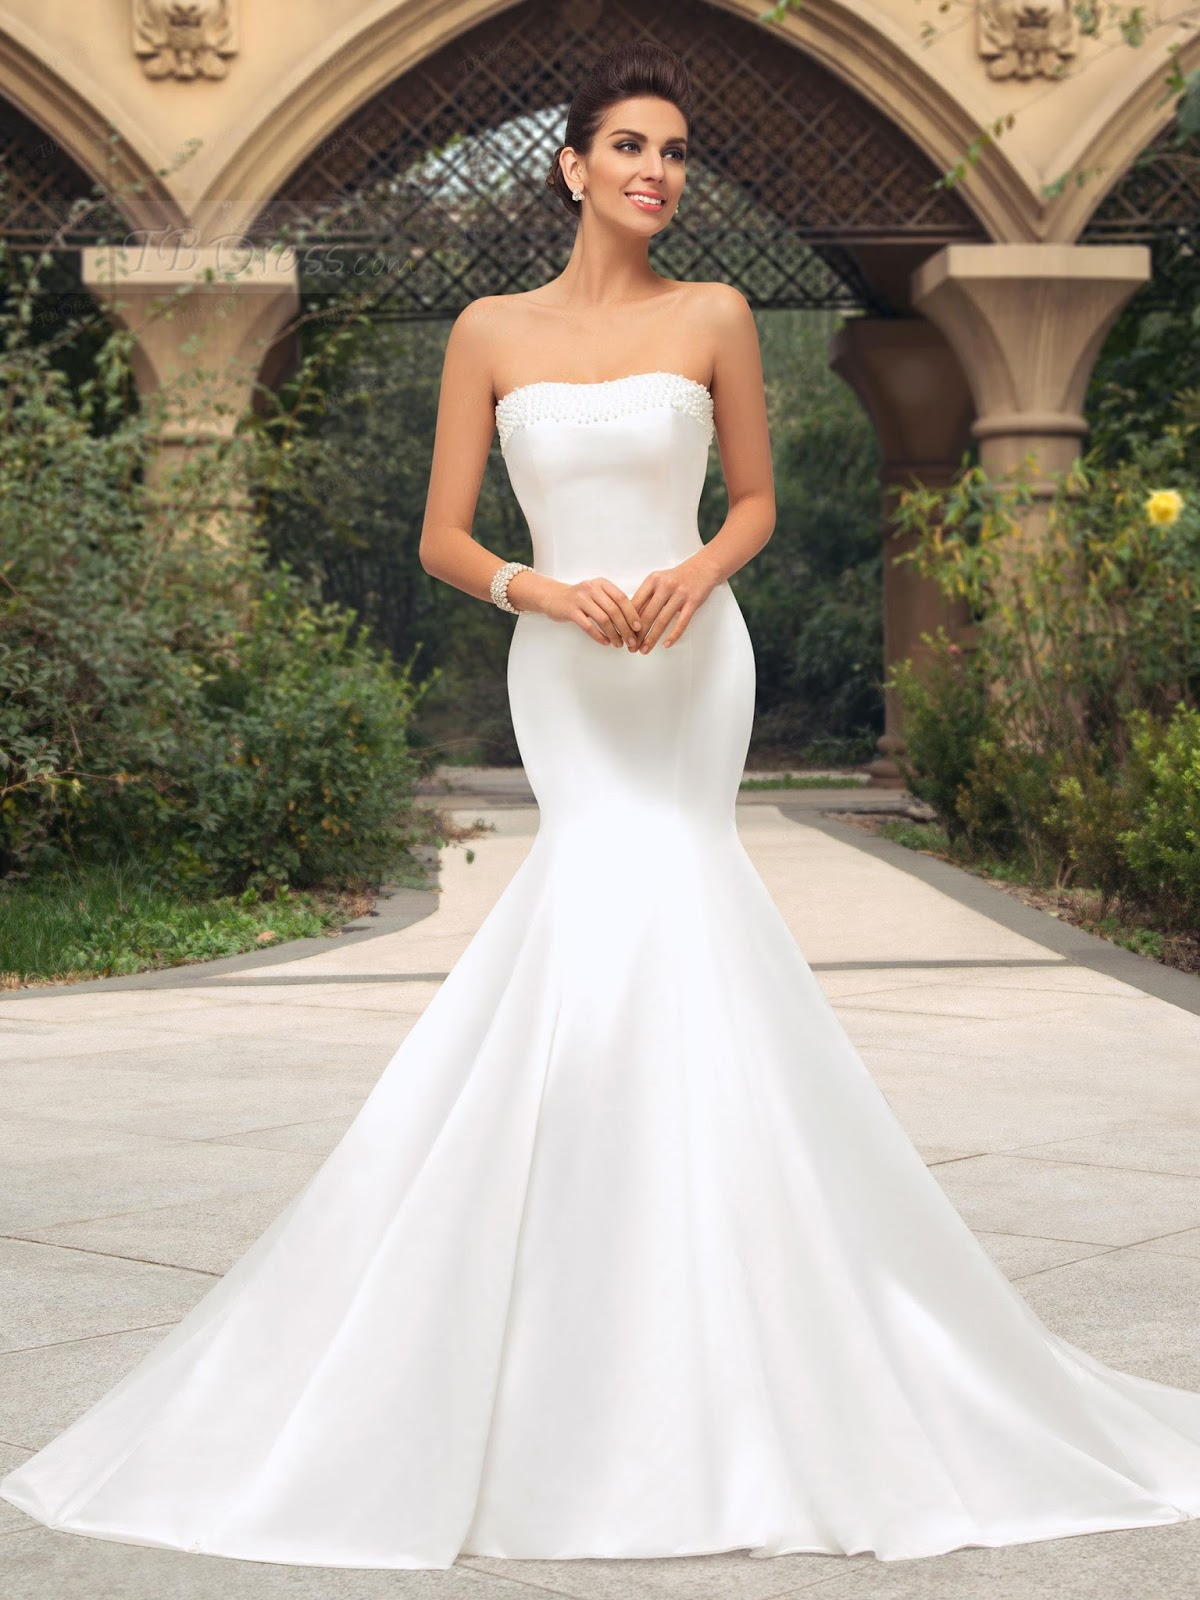 985963a48742 Tbdress is a global leading fashion Wedding dresses store , today we will  bring you a Strapless Trumpet Pearl Court Train Wedding Dress.